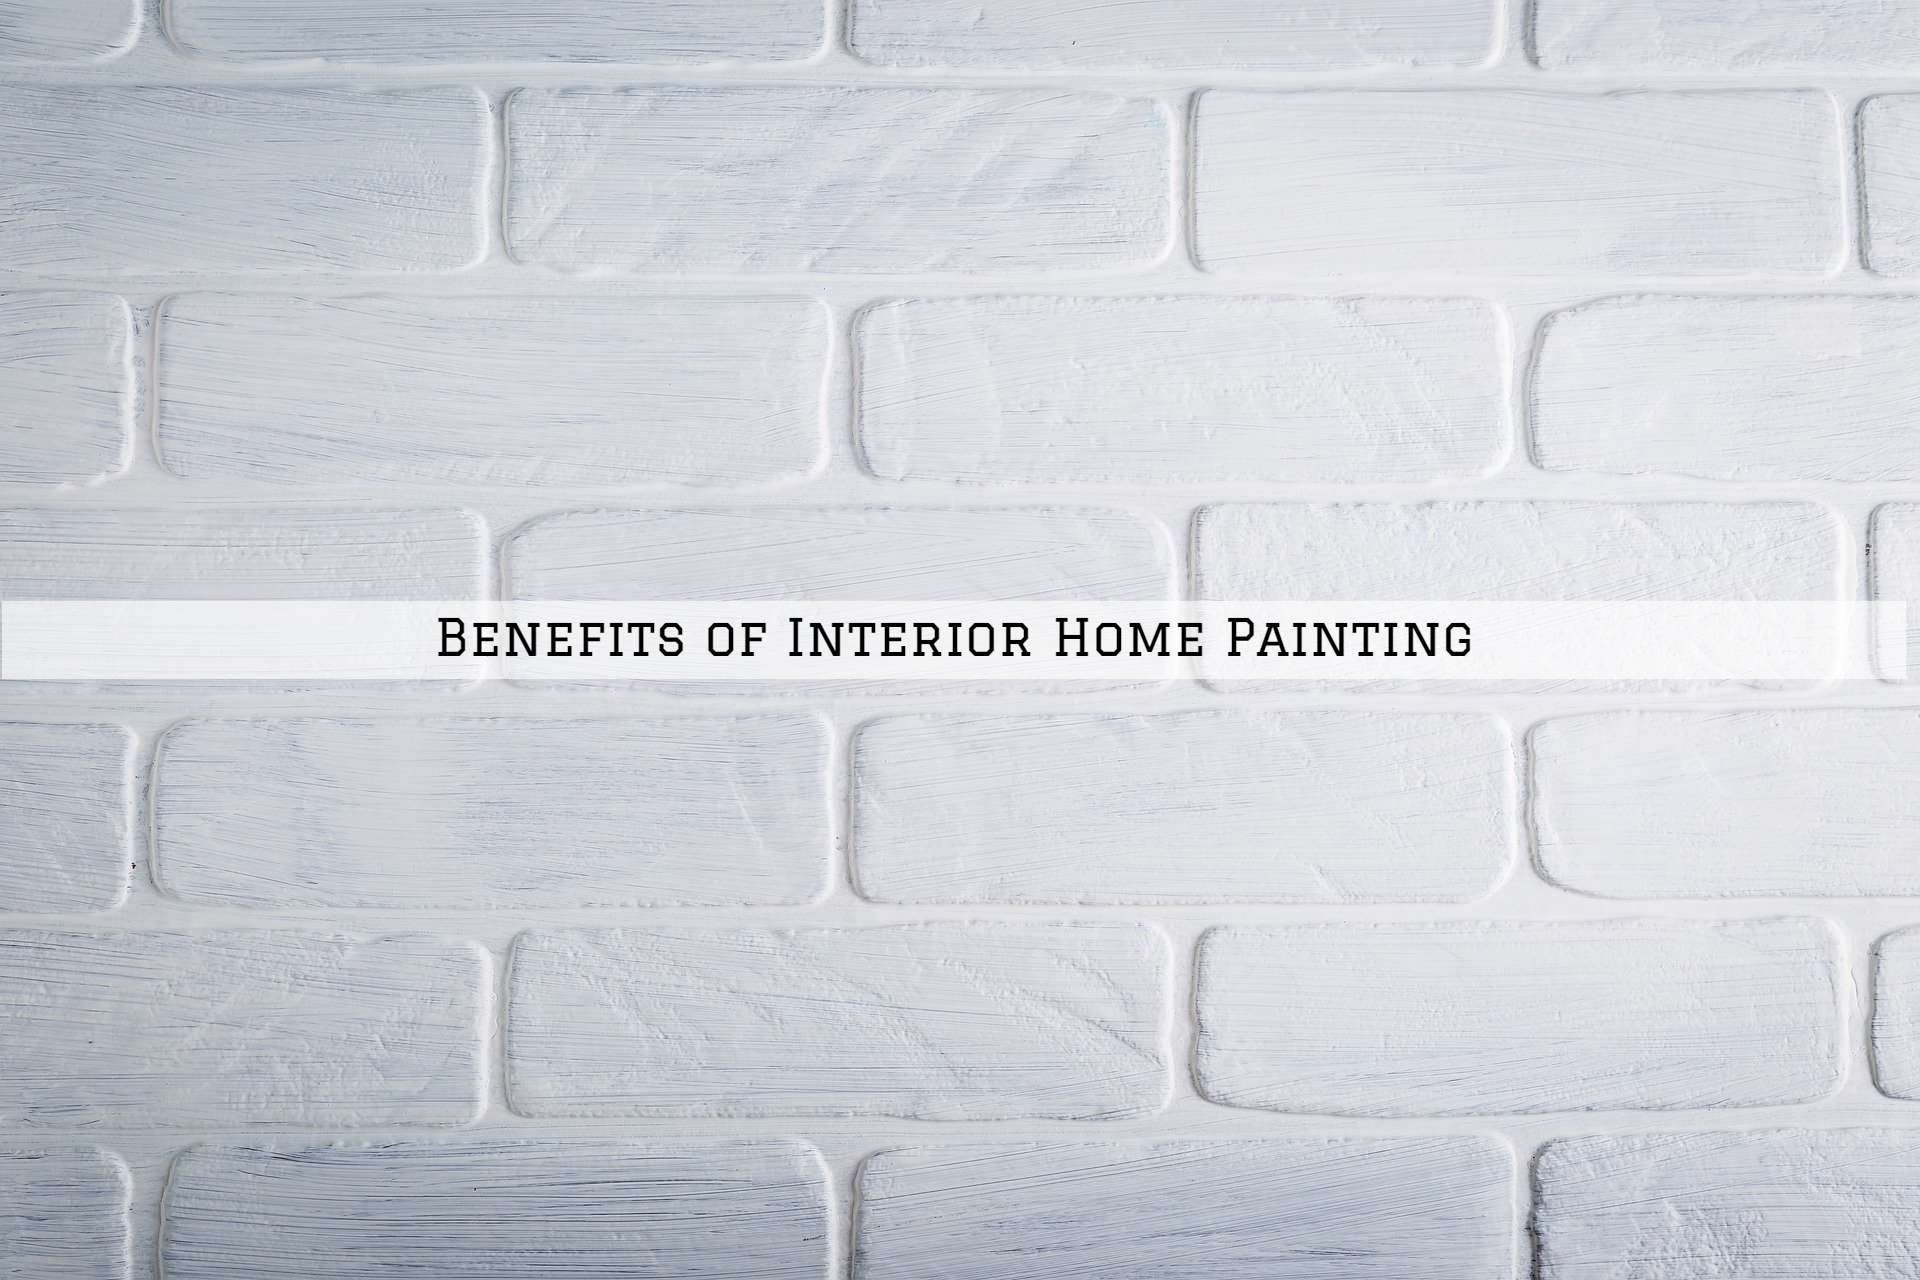 Benefits of Interior Home Painting in St. Louis, MO